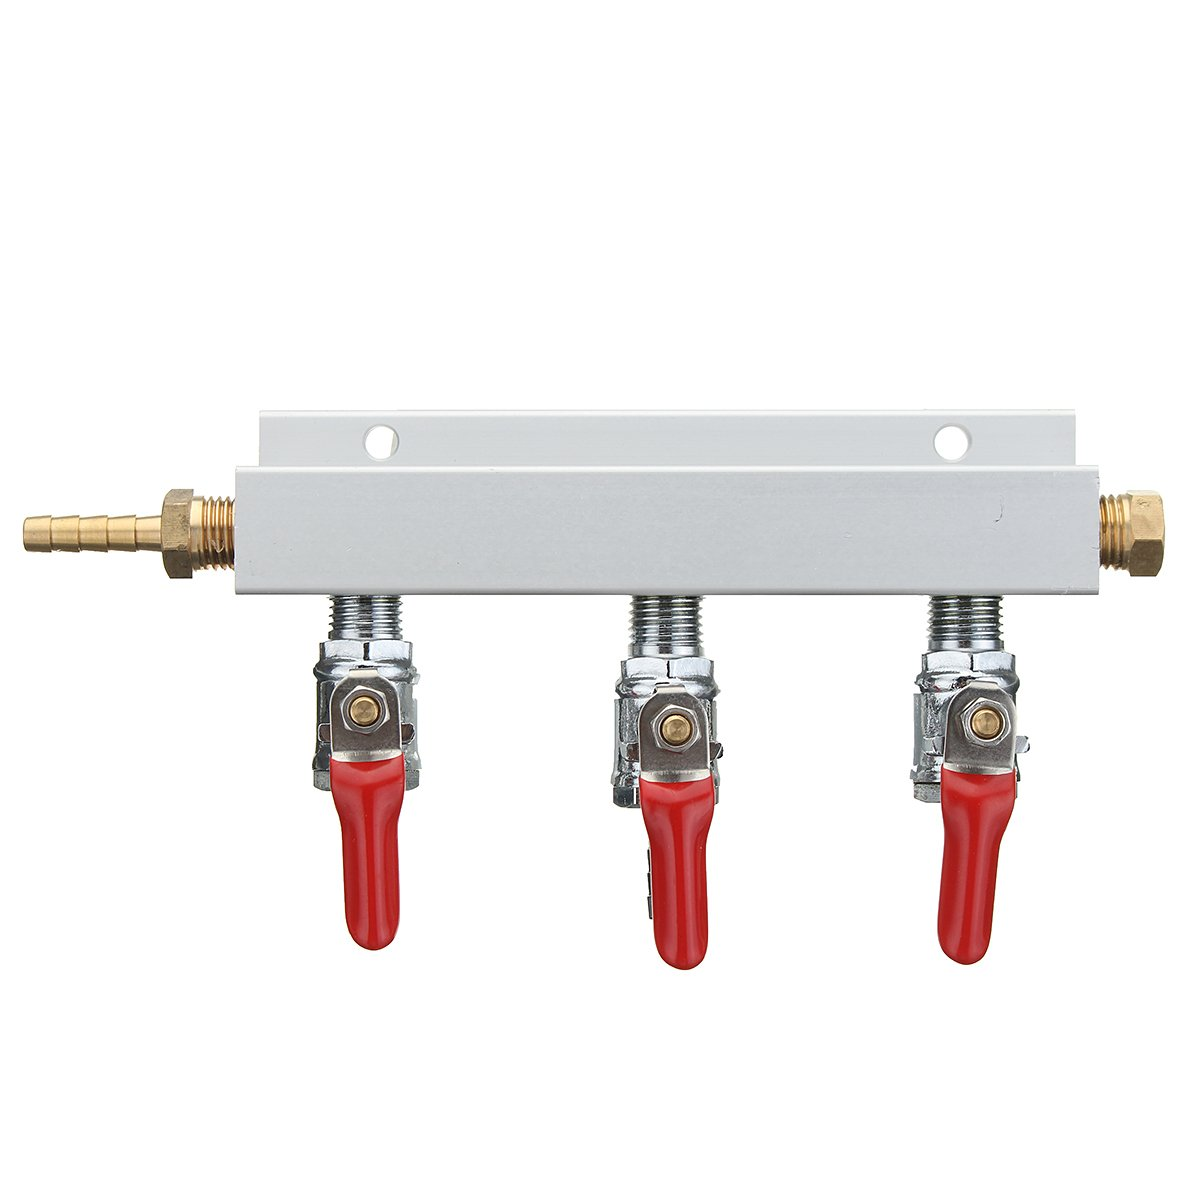 3-Way CO2 Air Distributor Manifold with Check Valves Brass 3/8 Inch Barb 3 Outputs